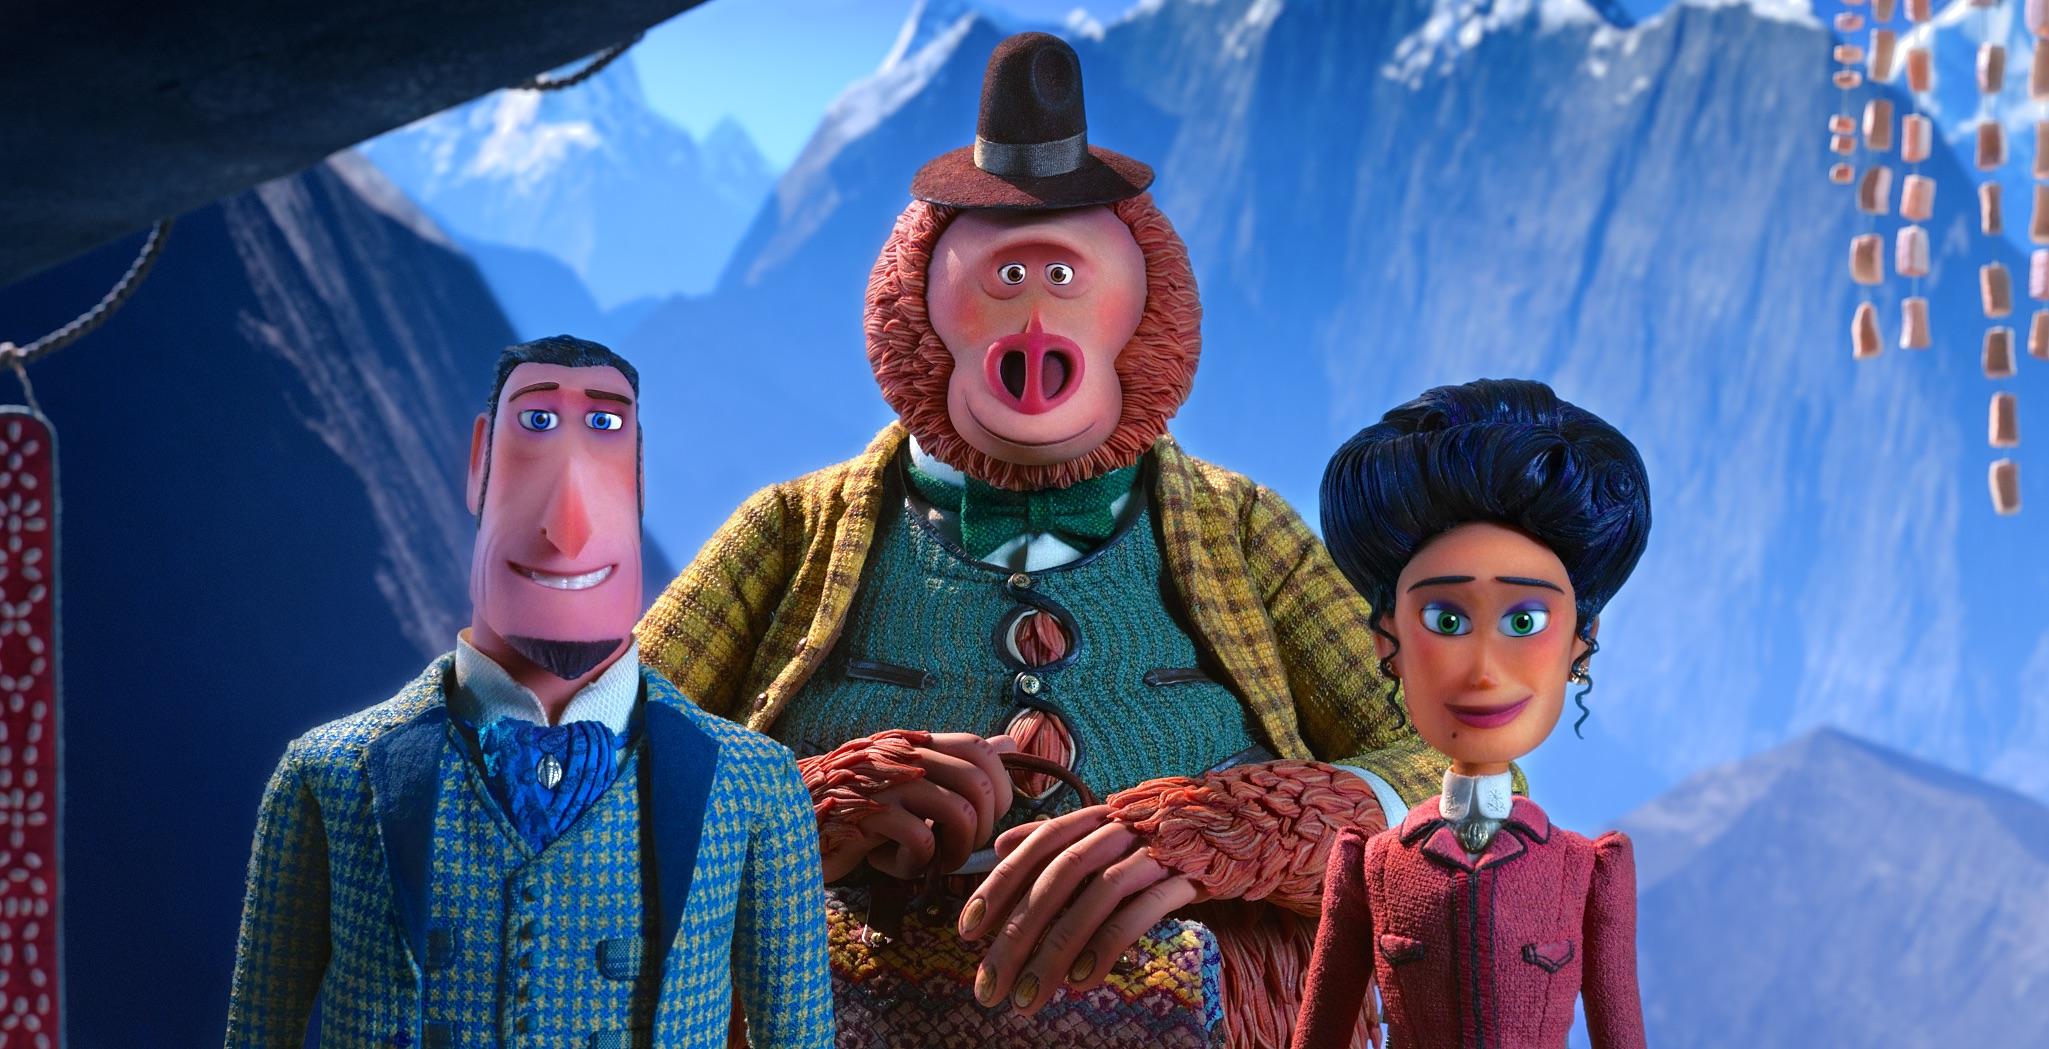 Courtesy of Laika Studios and Annapurna Pictures